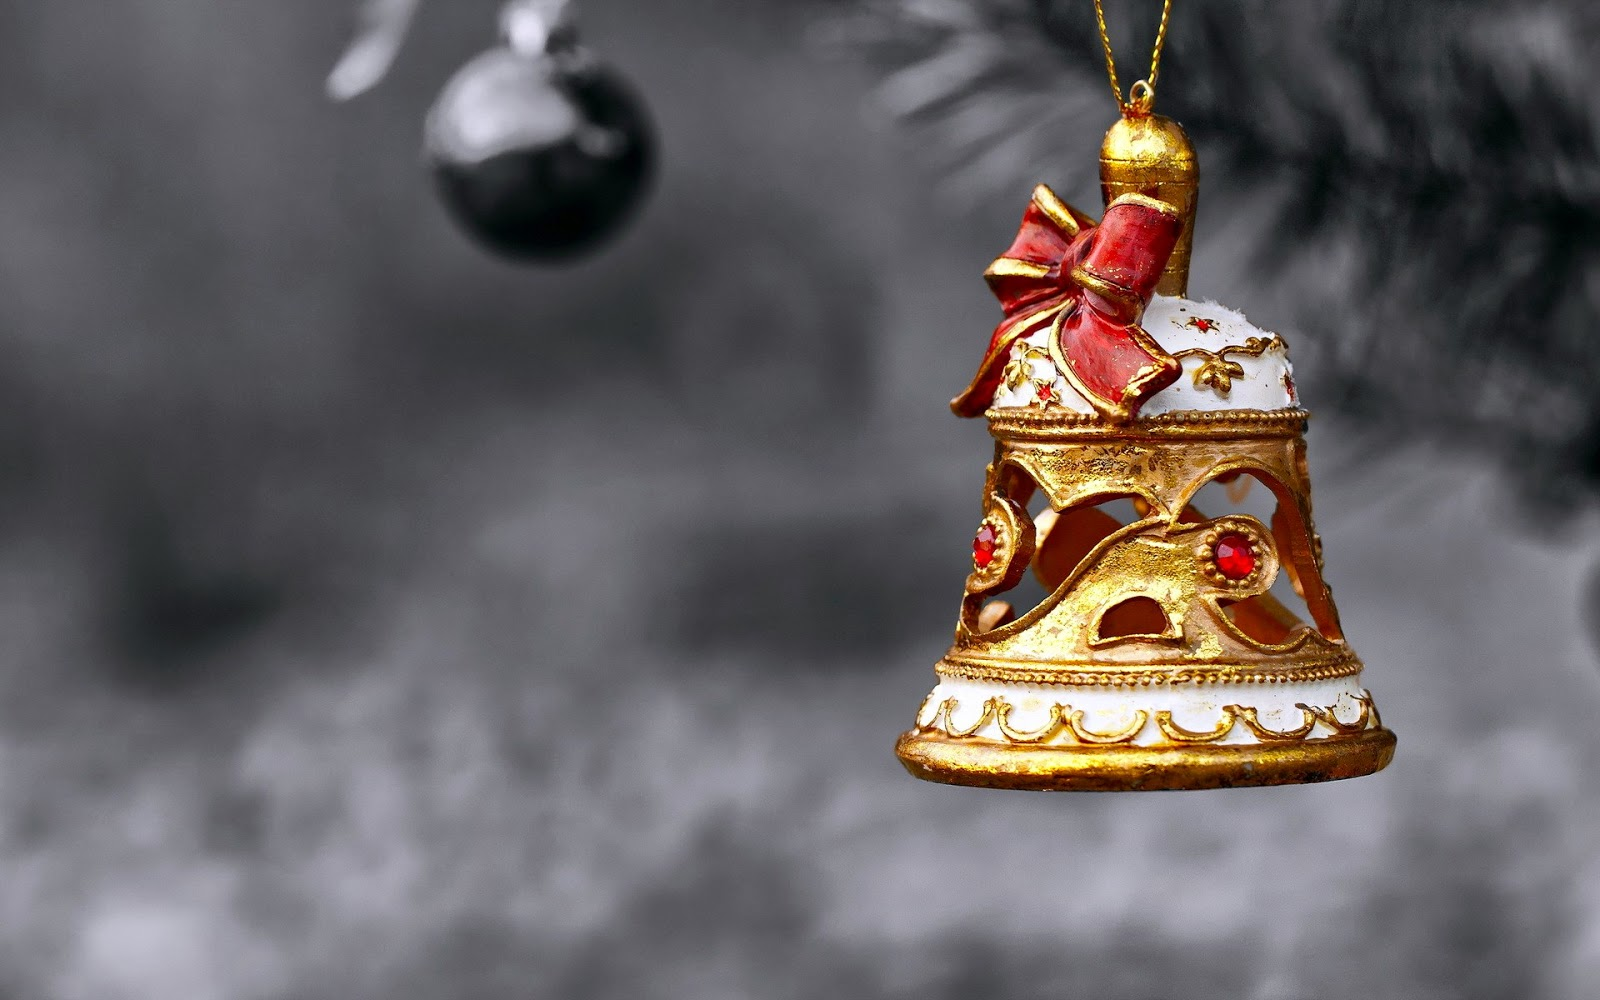 christmas-bell-closeup-focus-photography-pinterest-tumblr-wallpaper-hd-wallpapers.jpg